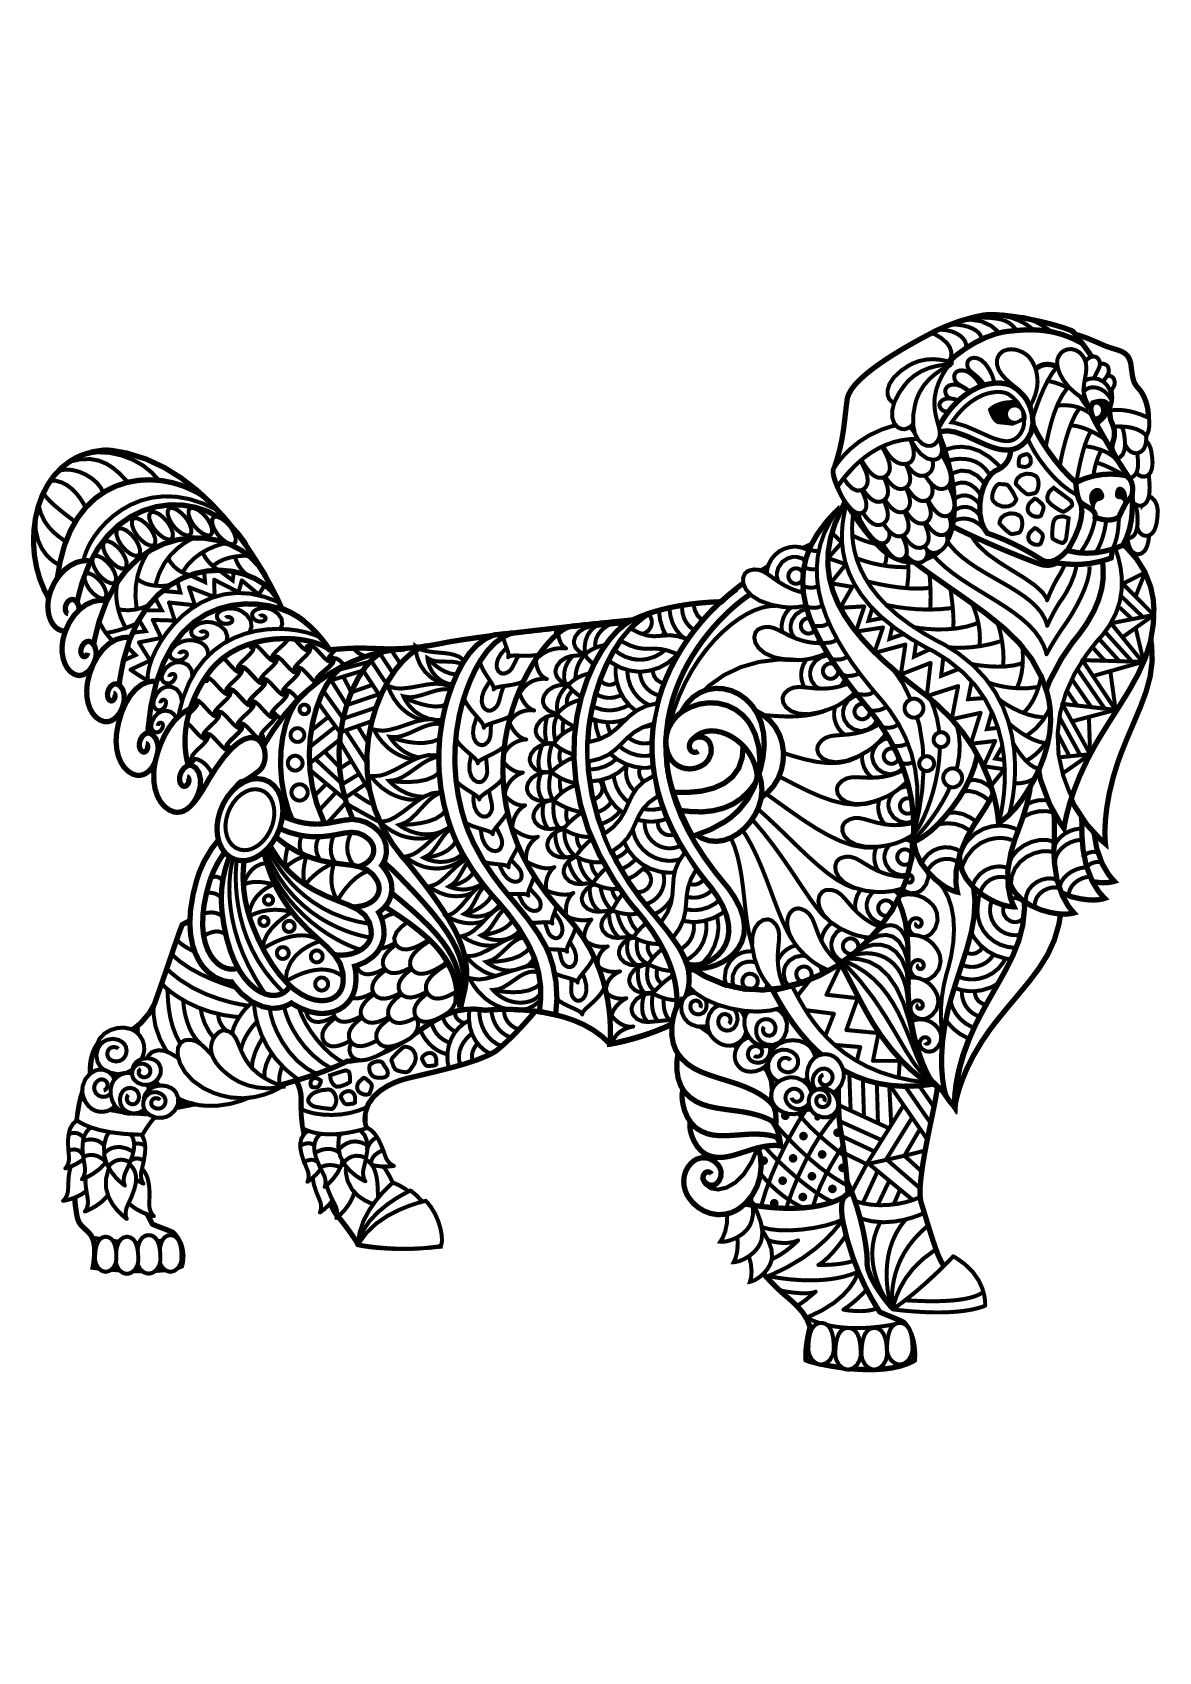 Dogs free to color for kids - Dogs Kids Coloring Pages